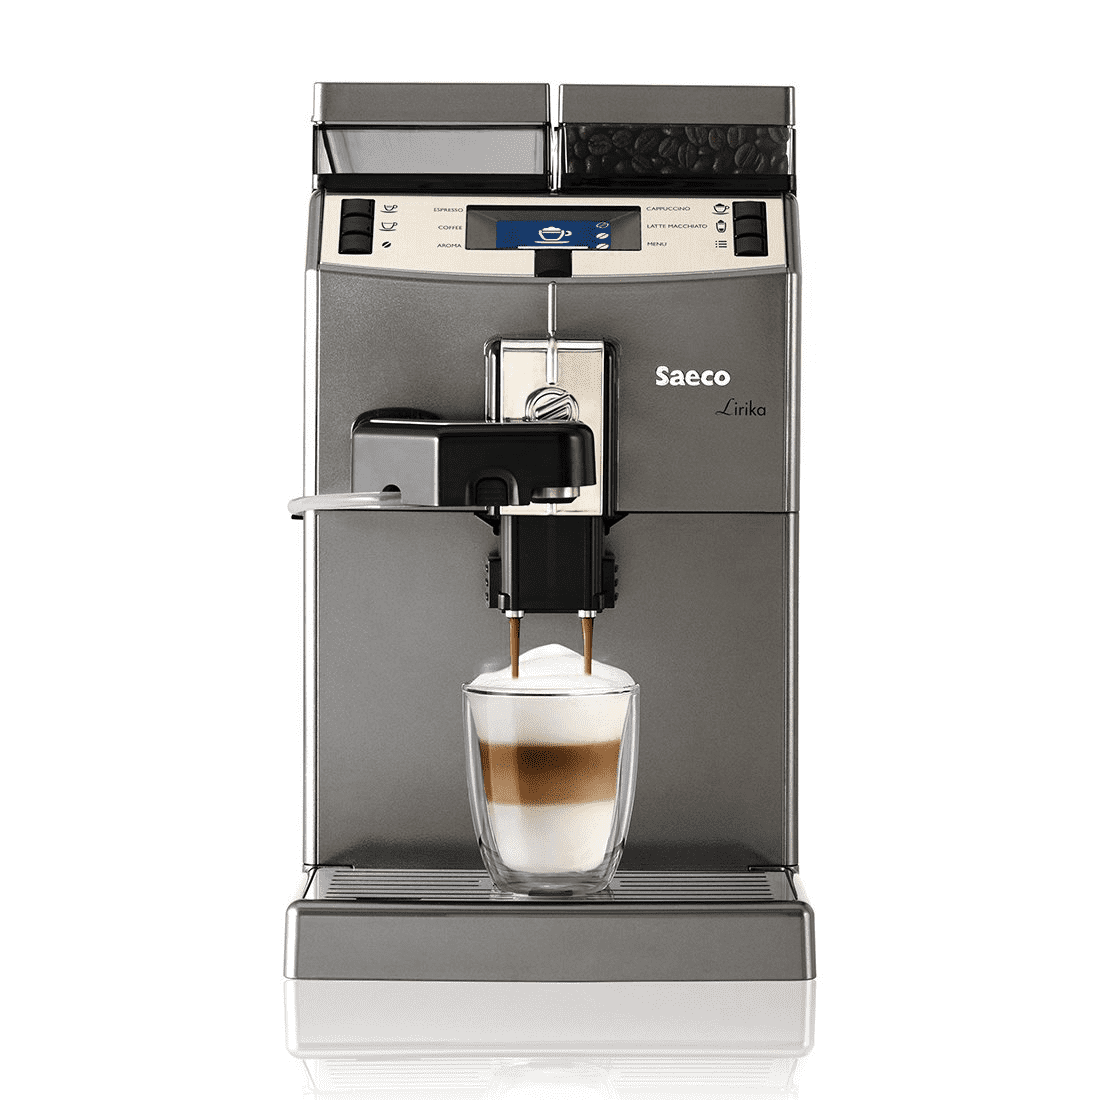 Saeco Lirika OTC RI9851/12 Anthracite⎮ Fully Automatic Espresso Machine